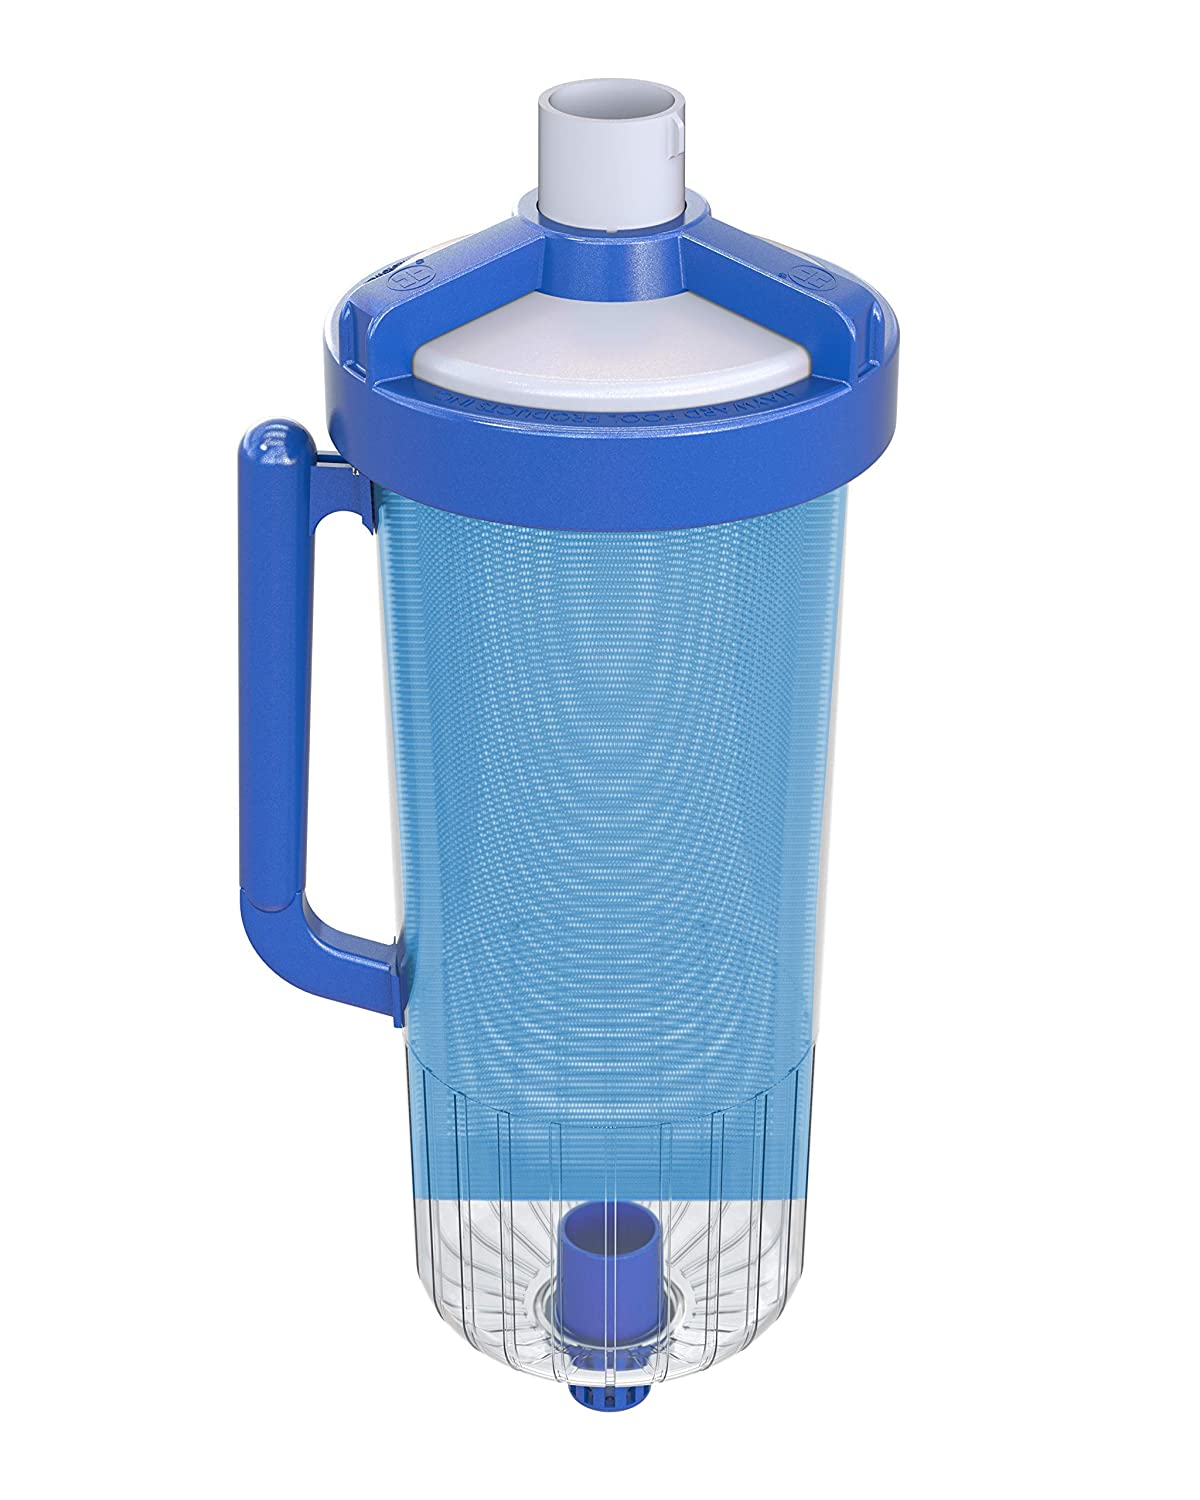 Hayward W530 Large Capacity Leaf Canister w//Mesh Bag For Swimming Pool Cleaners